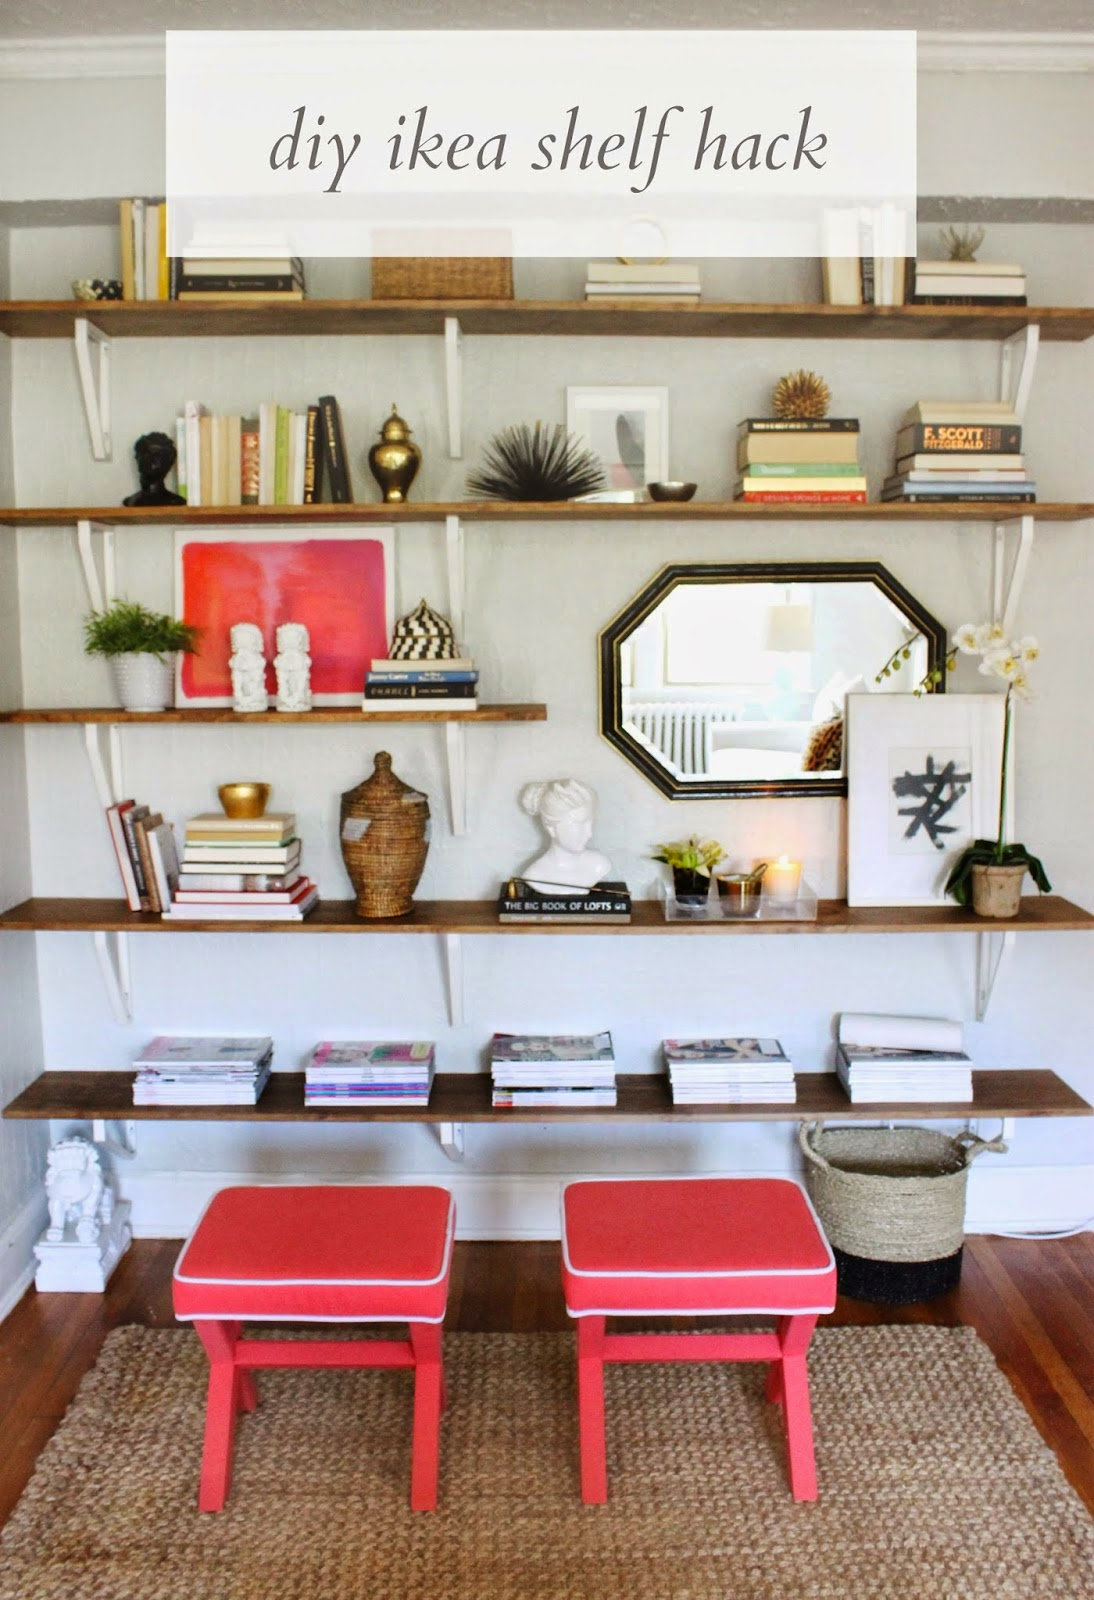 How To Diy Ikea Hacked Shelving Unit Shannon Claire